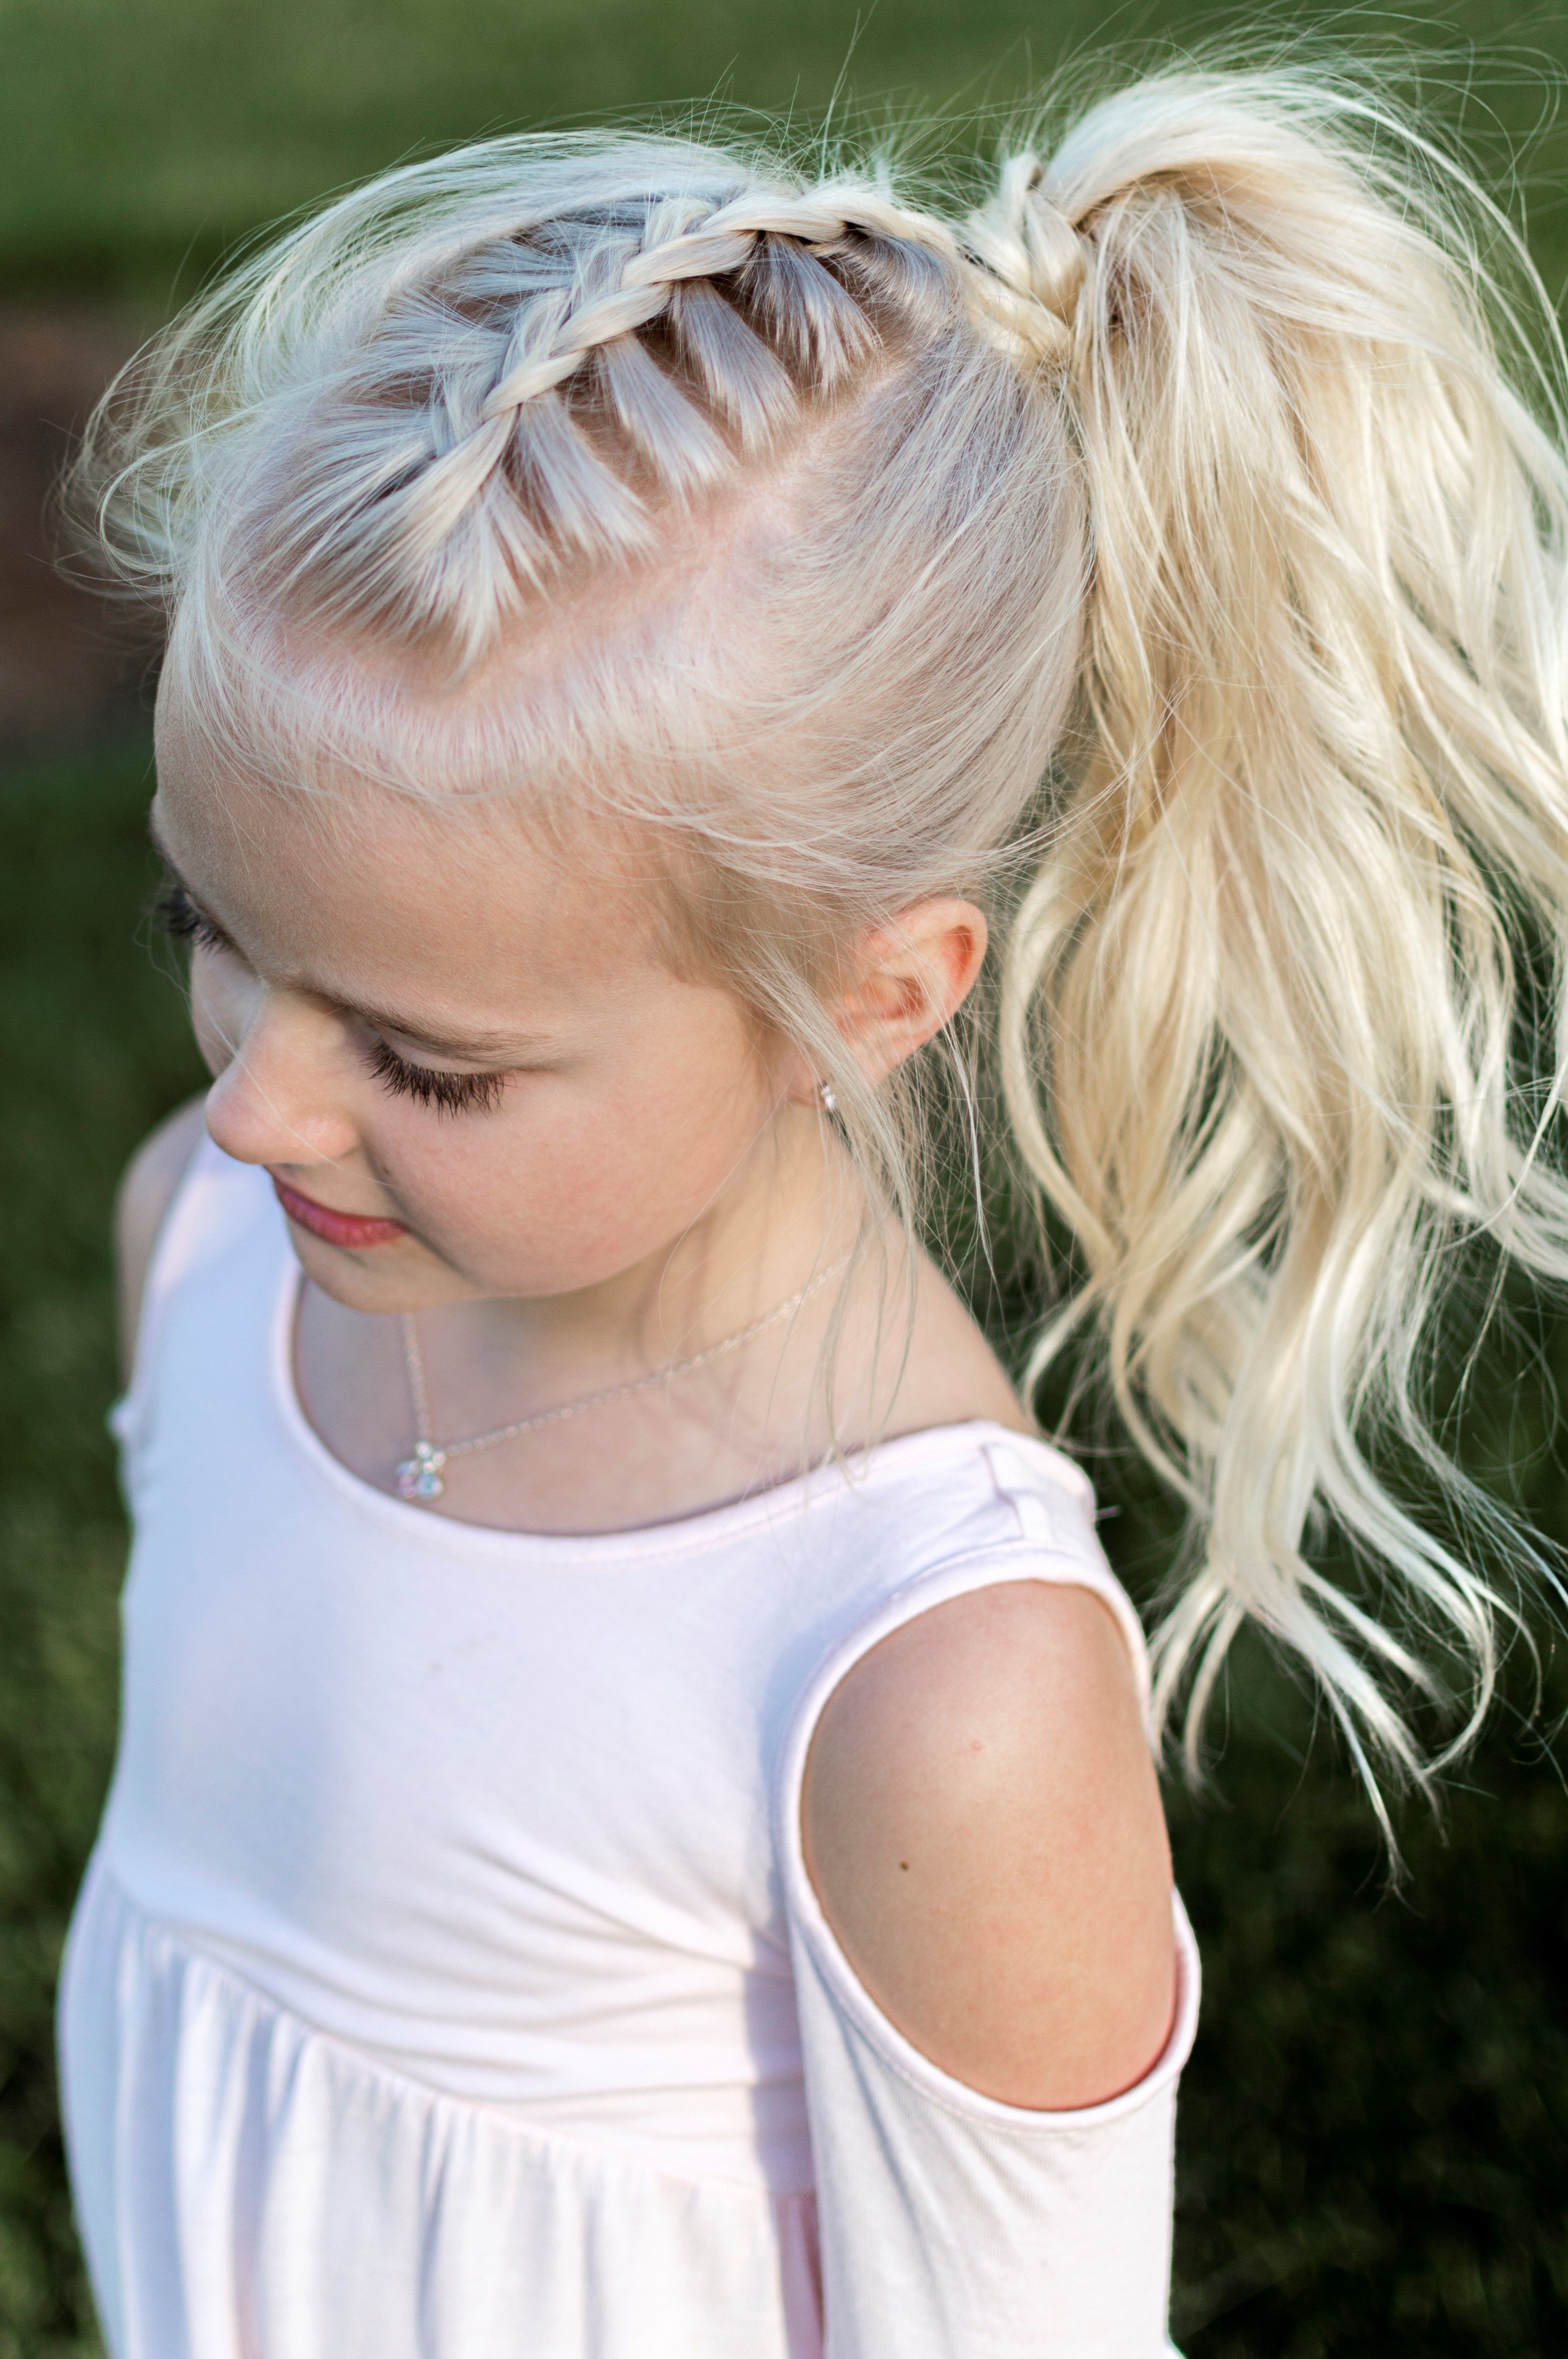 Well Known Blonde Pony With Double Braids Pertaining To Little Girl Hairstyle French Braid Pony Tail Curls High Pony (View 9 of 15)